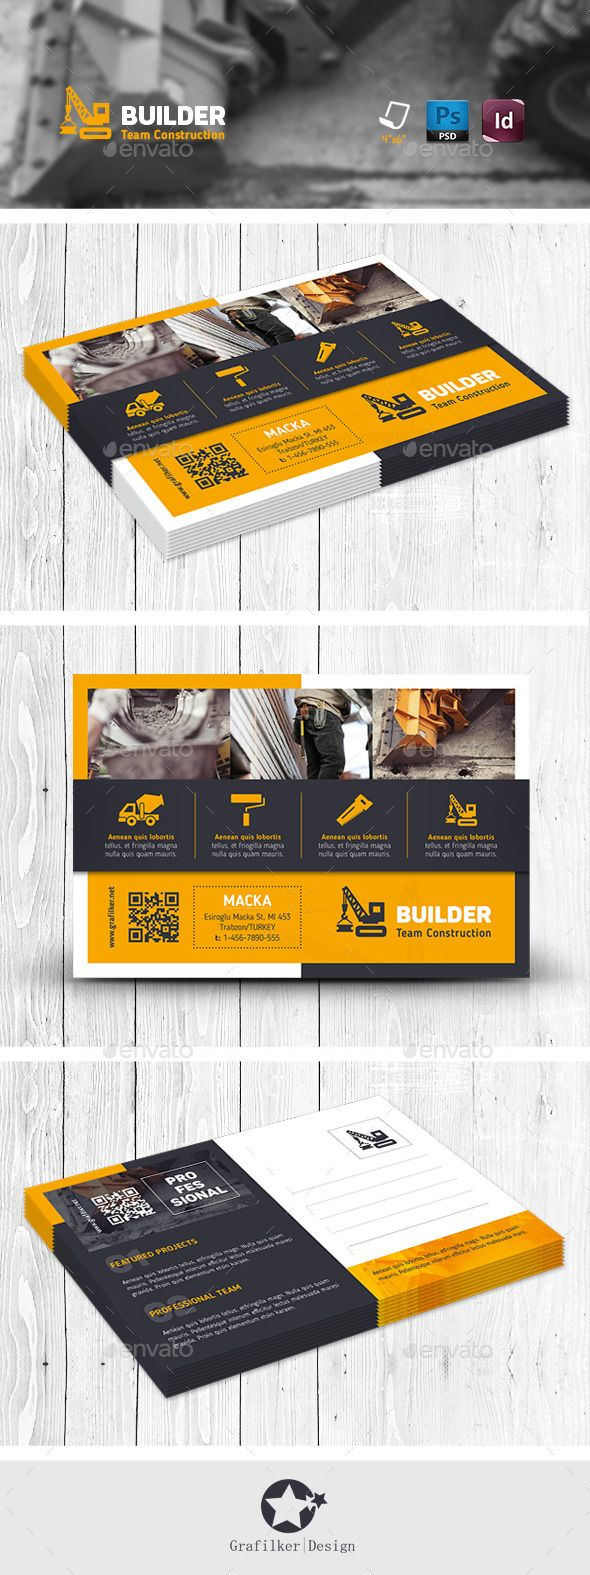 Construction Postcard Templates | Diseño editorial, Tarjetas ...